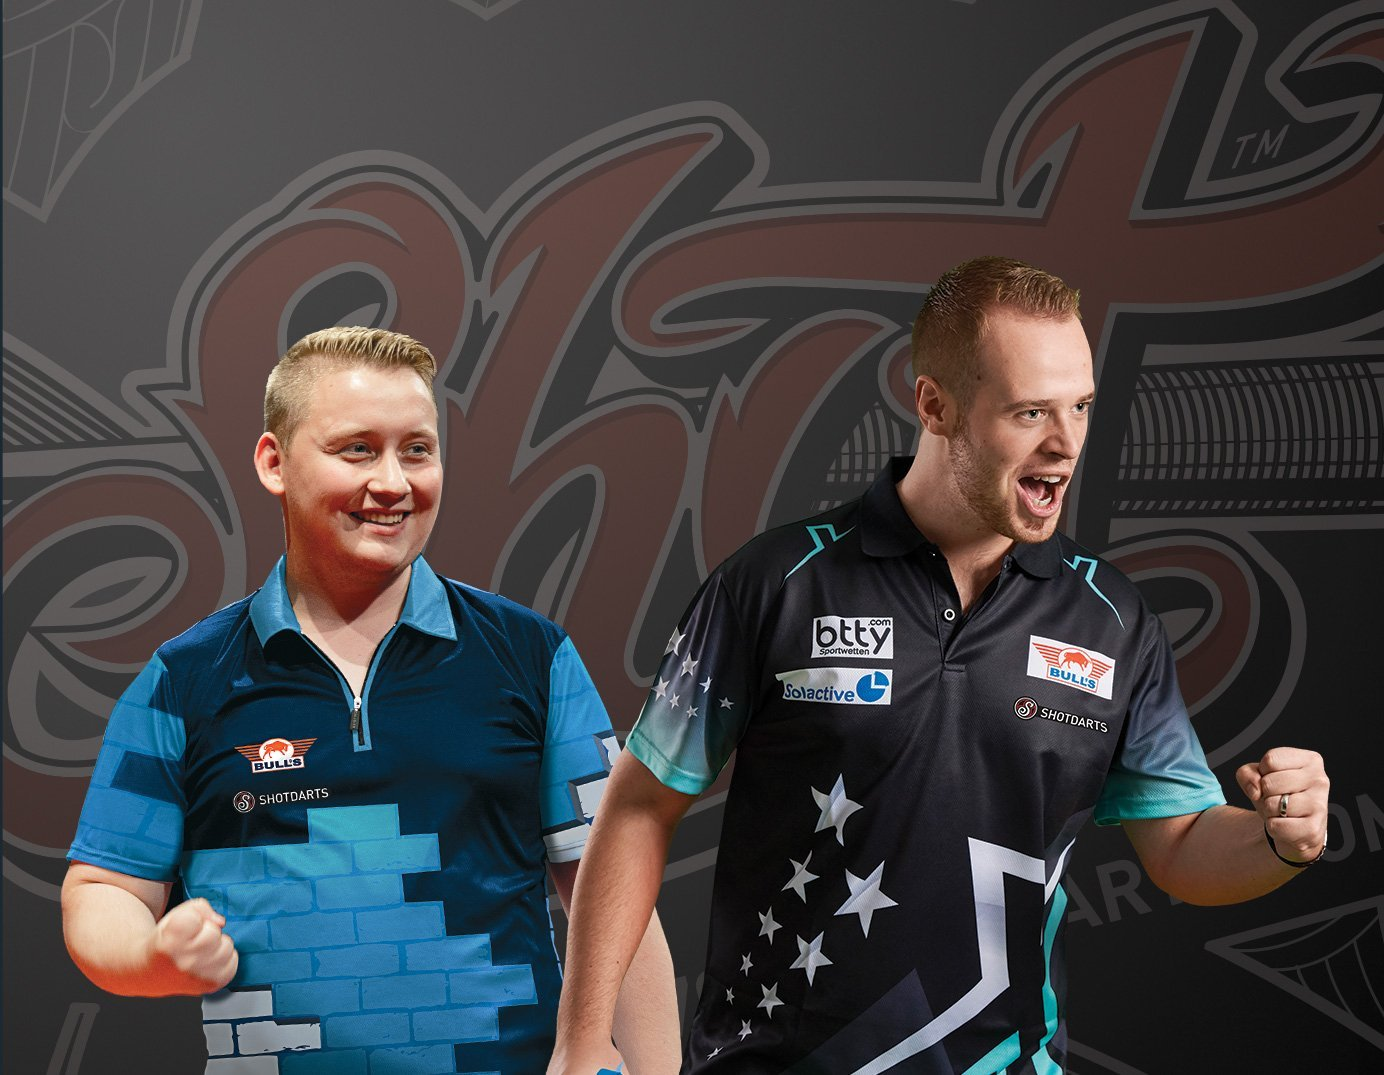 2019 World Cup Focus - Darts Team Germany